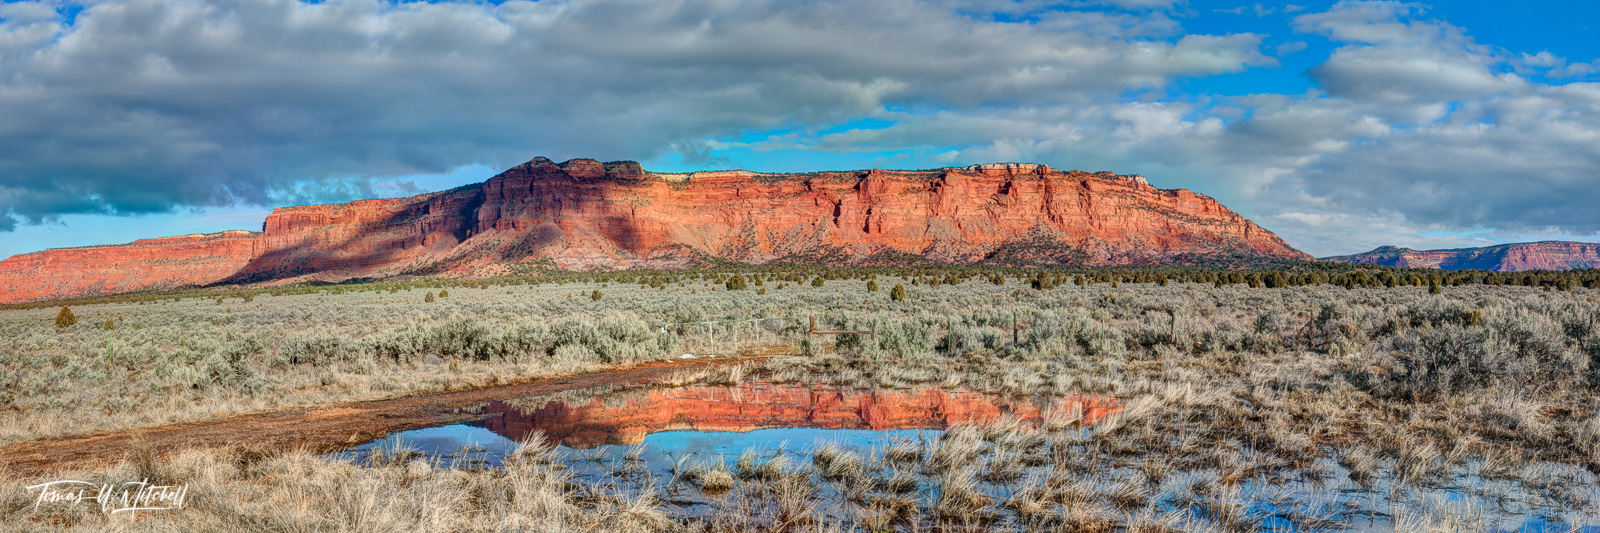 limited editions, fine art, prints, vermilion cliffs, reflection, US 89, kanab, page, arizona, utah, desert, usa, water, storm, clouds, cliffs, blue, cloudy, sky, panoramic, photo